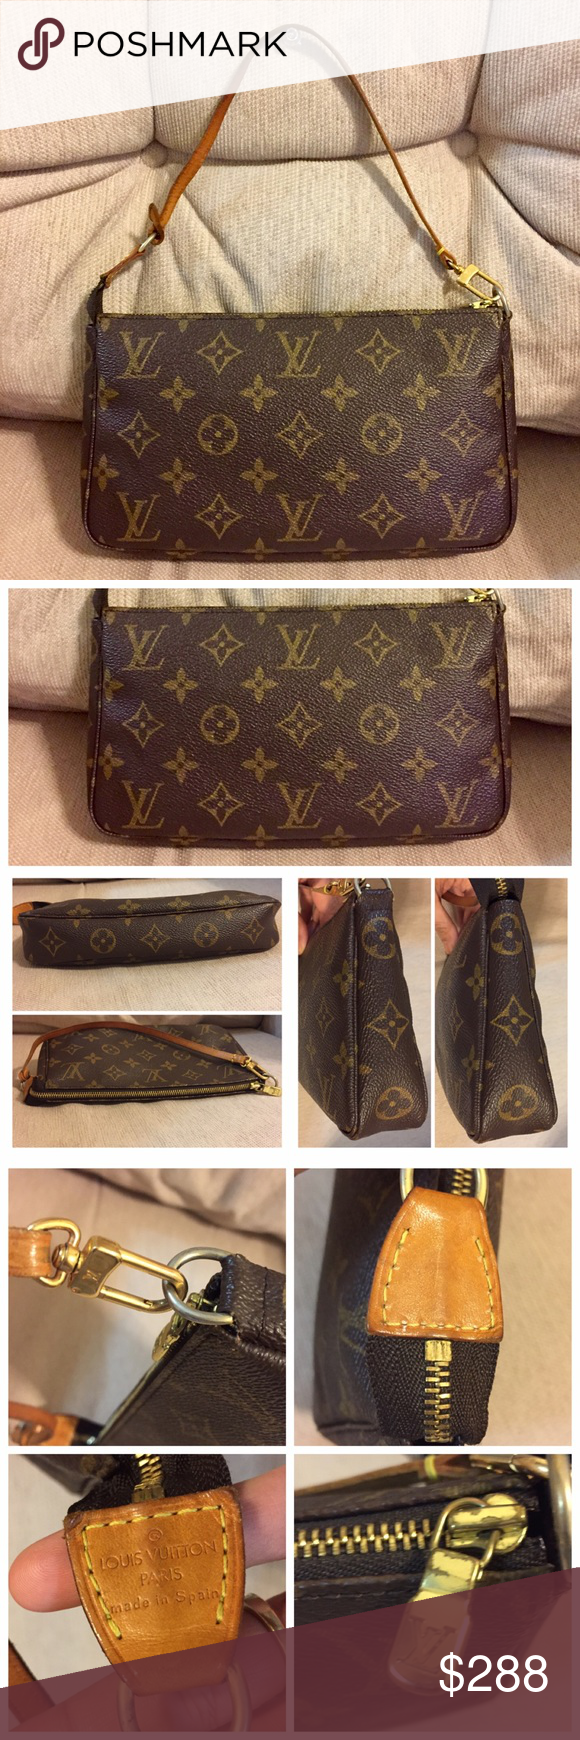 100 Authentic Mini Louis Vuitton Made In France Has No Date >> Louis Vuitton Pochette Accessoires 100 Authentic Made In